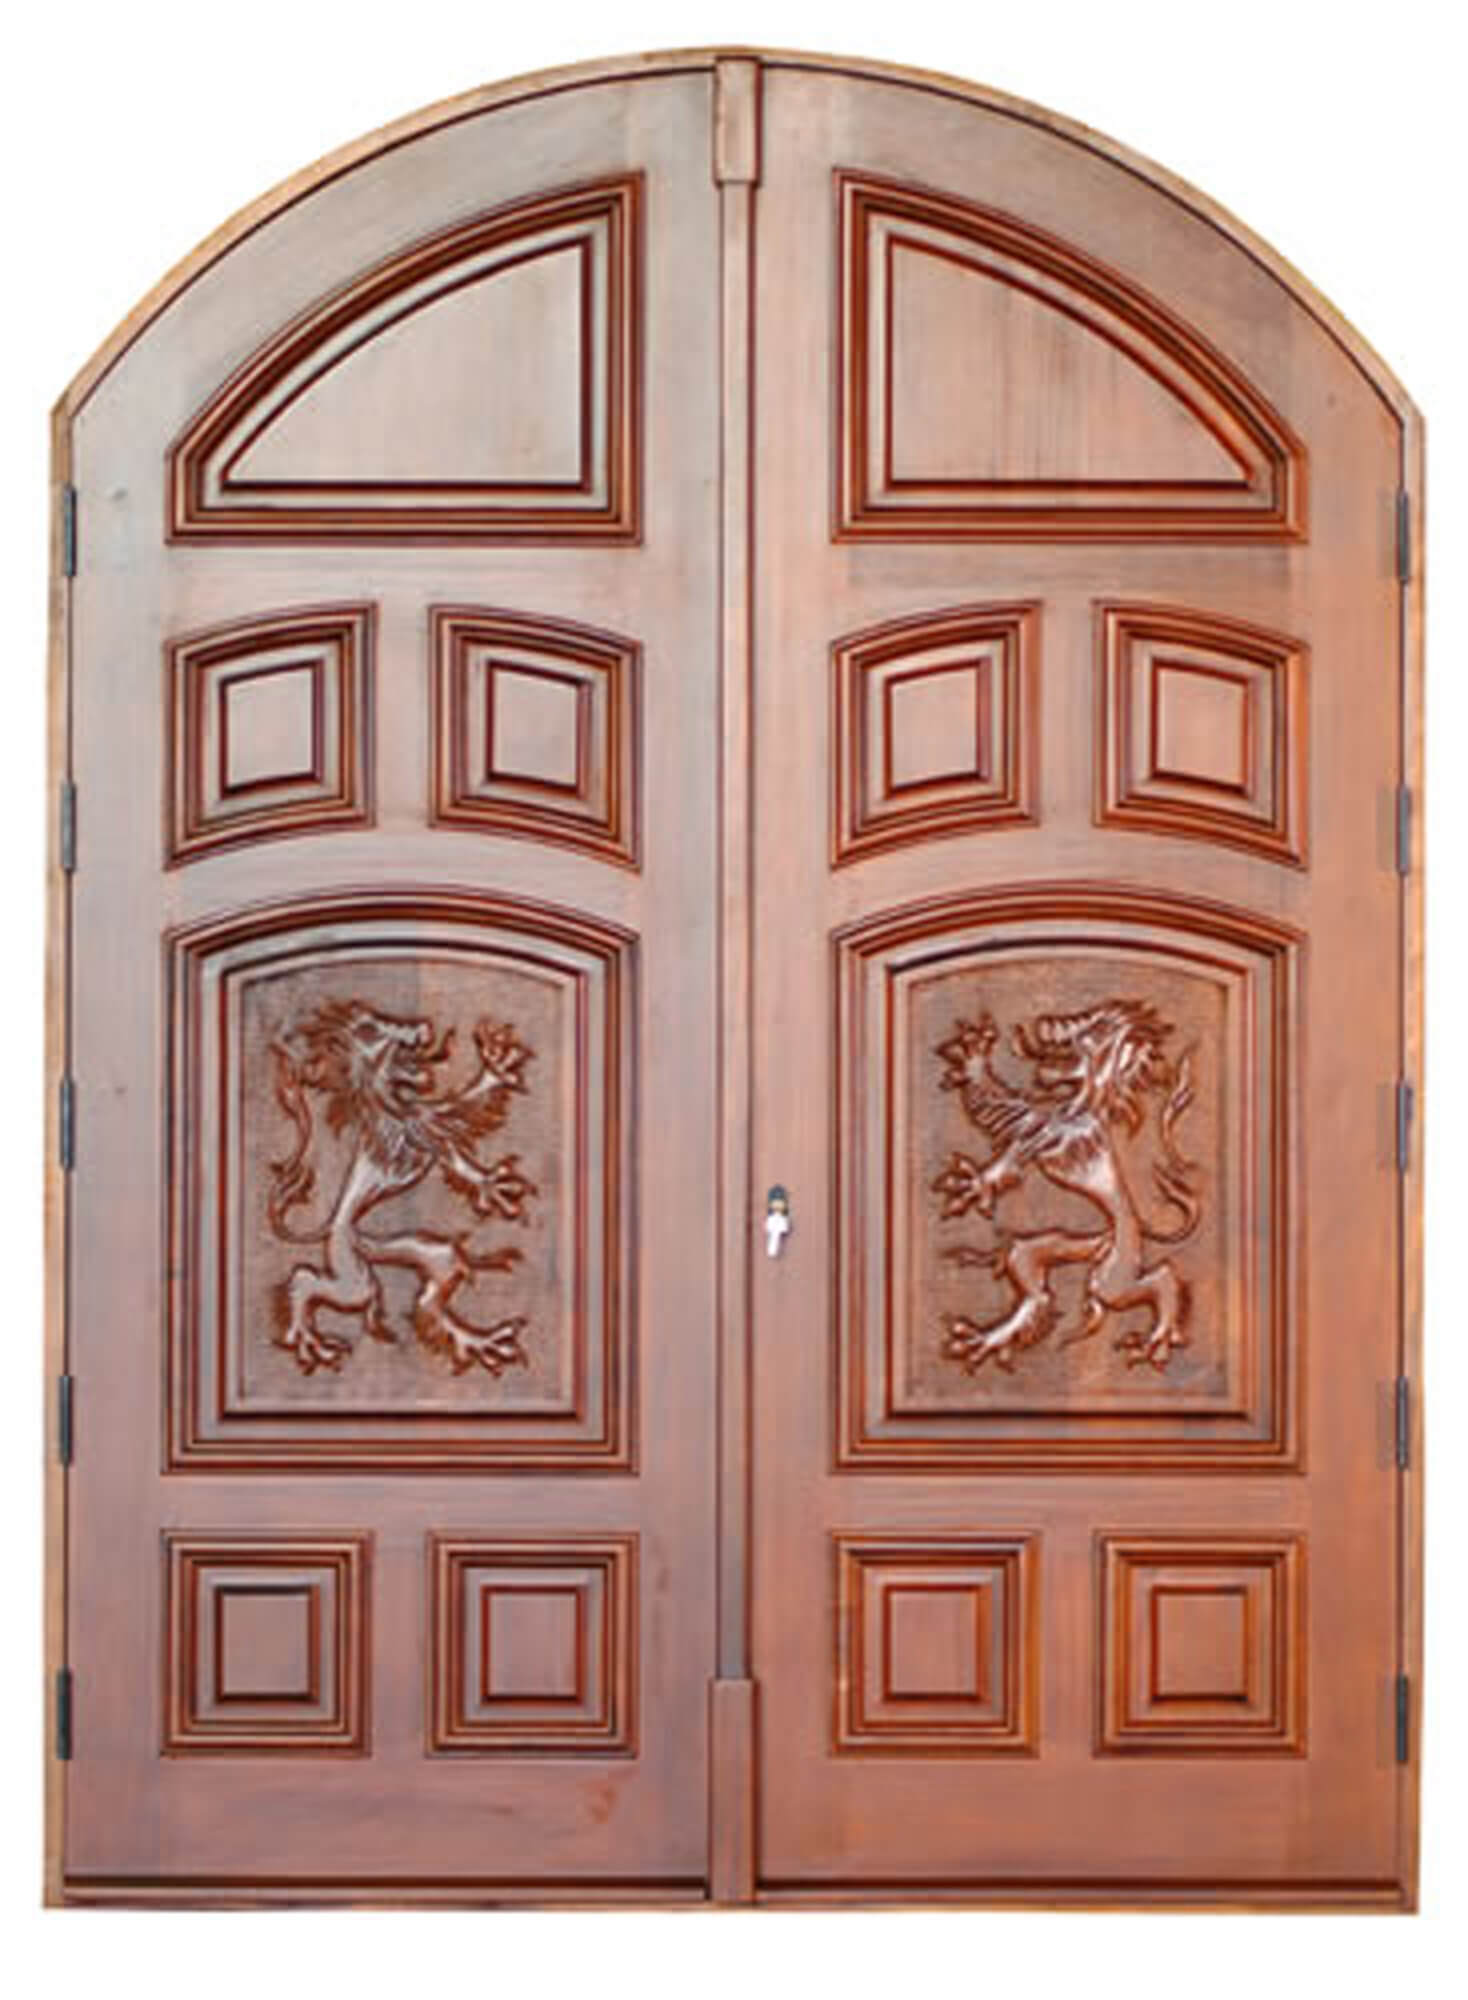 INDIAN CREEK VILLAGE. MAHOGANY CARVED DOORS.